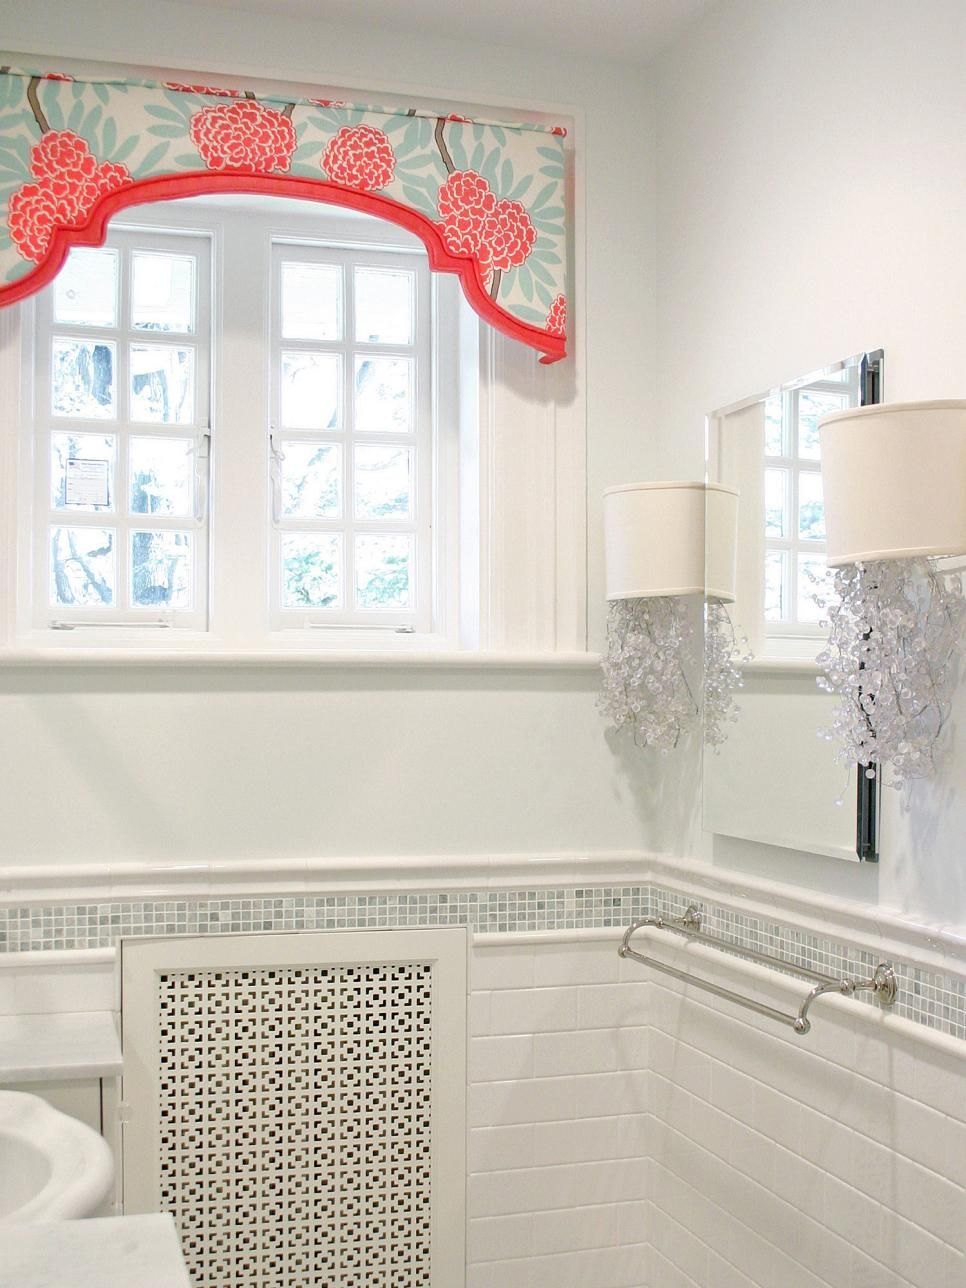 Small window ideas  bathroom gets a girly makeover  ideas for the home  pinterest